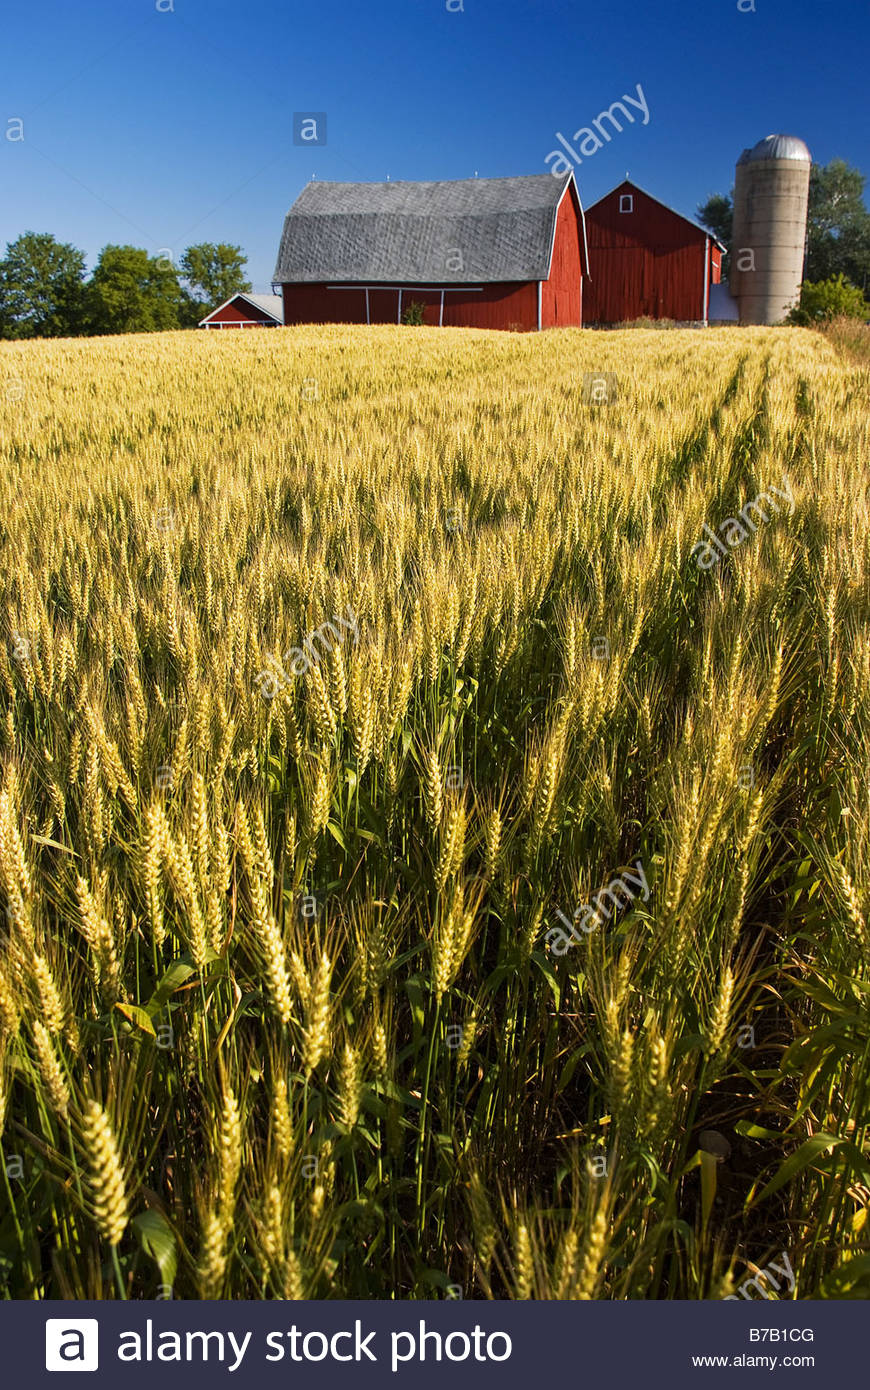 Wheat field and barn - Stock Image